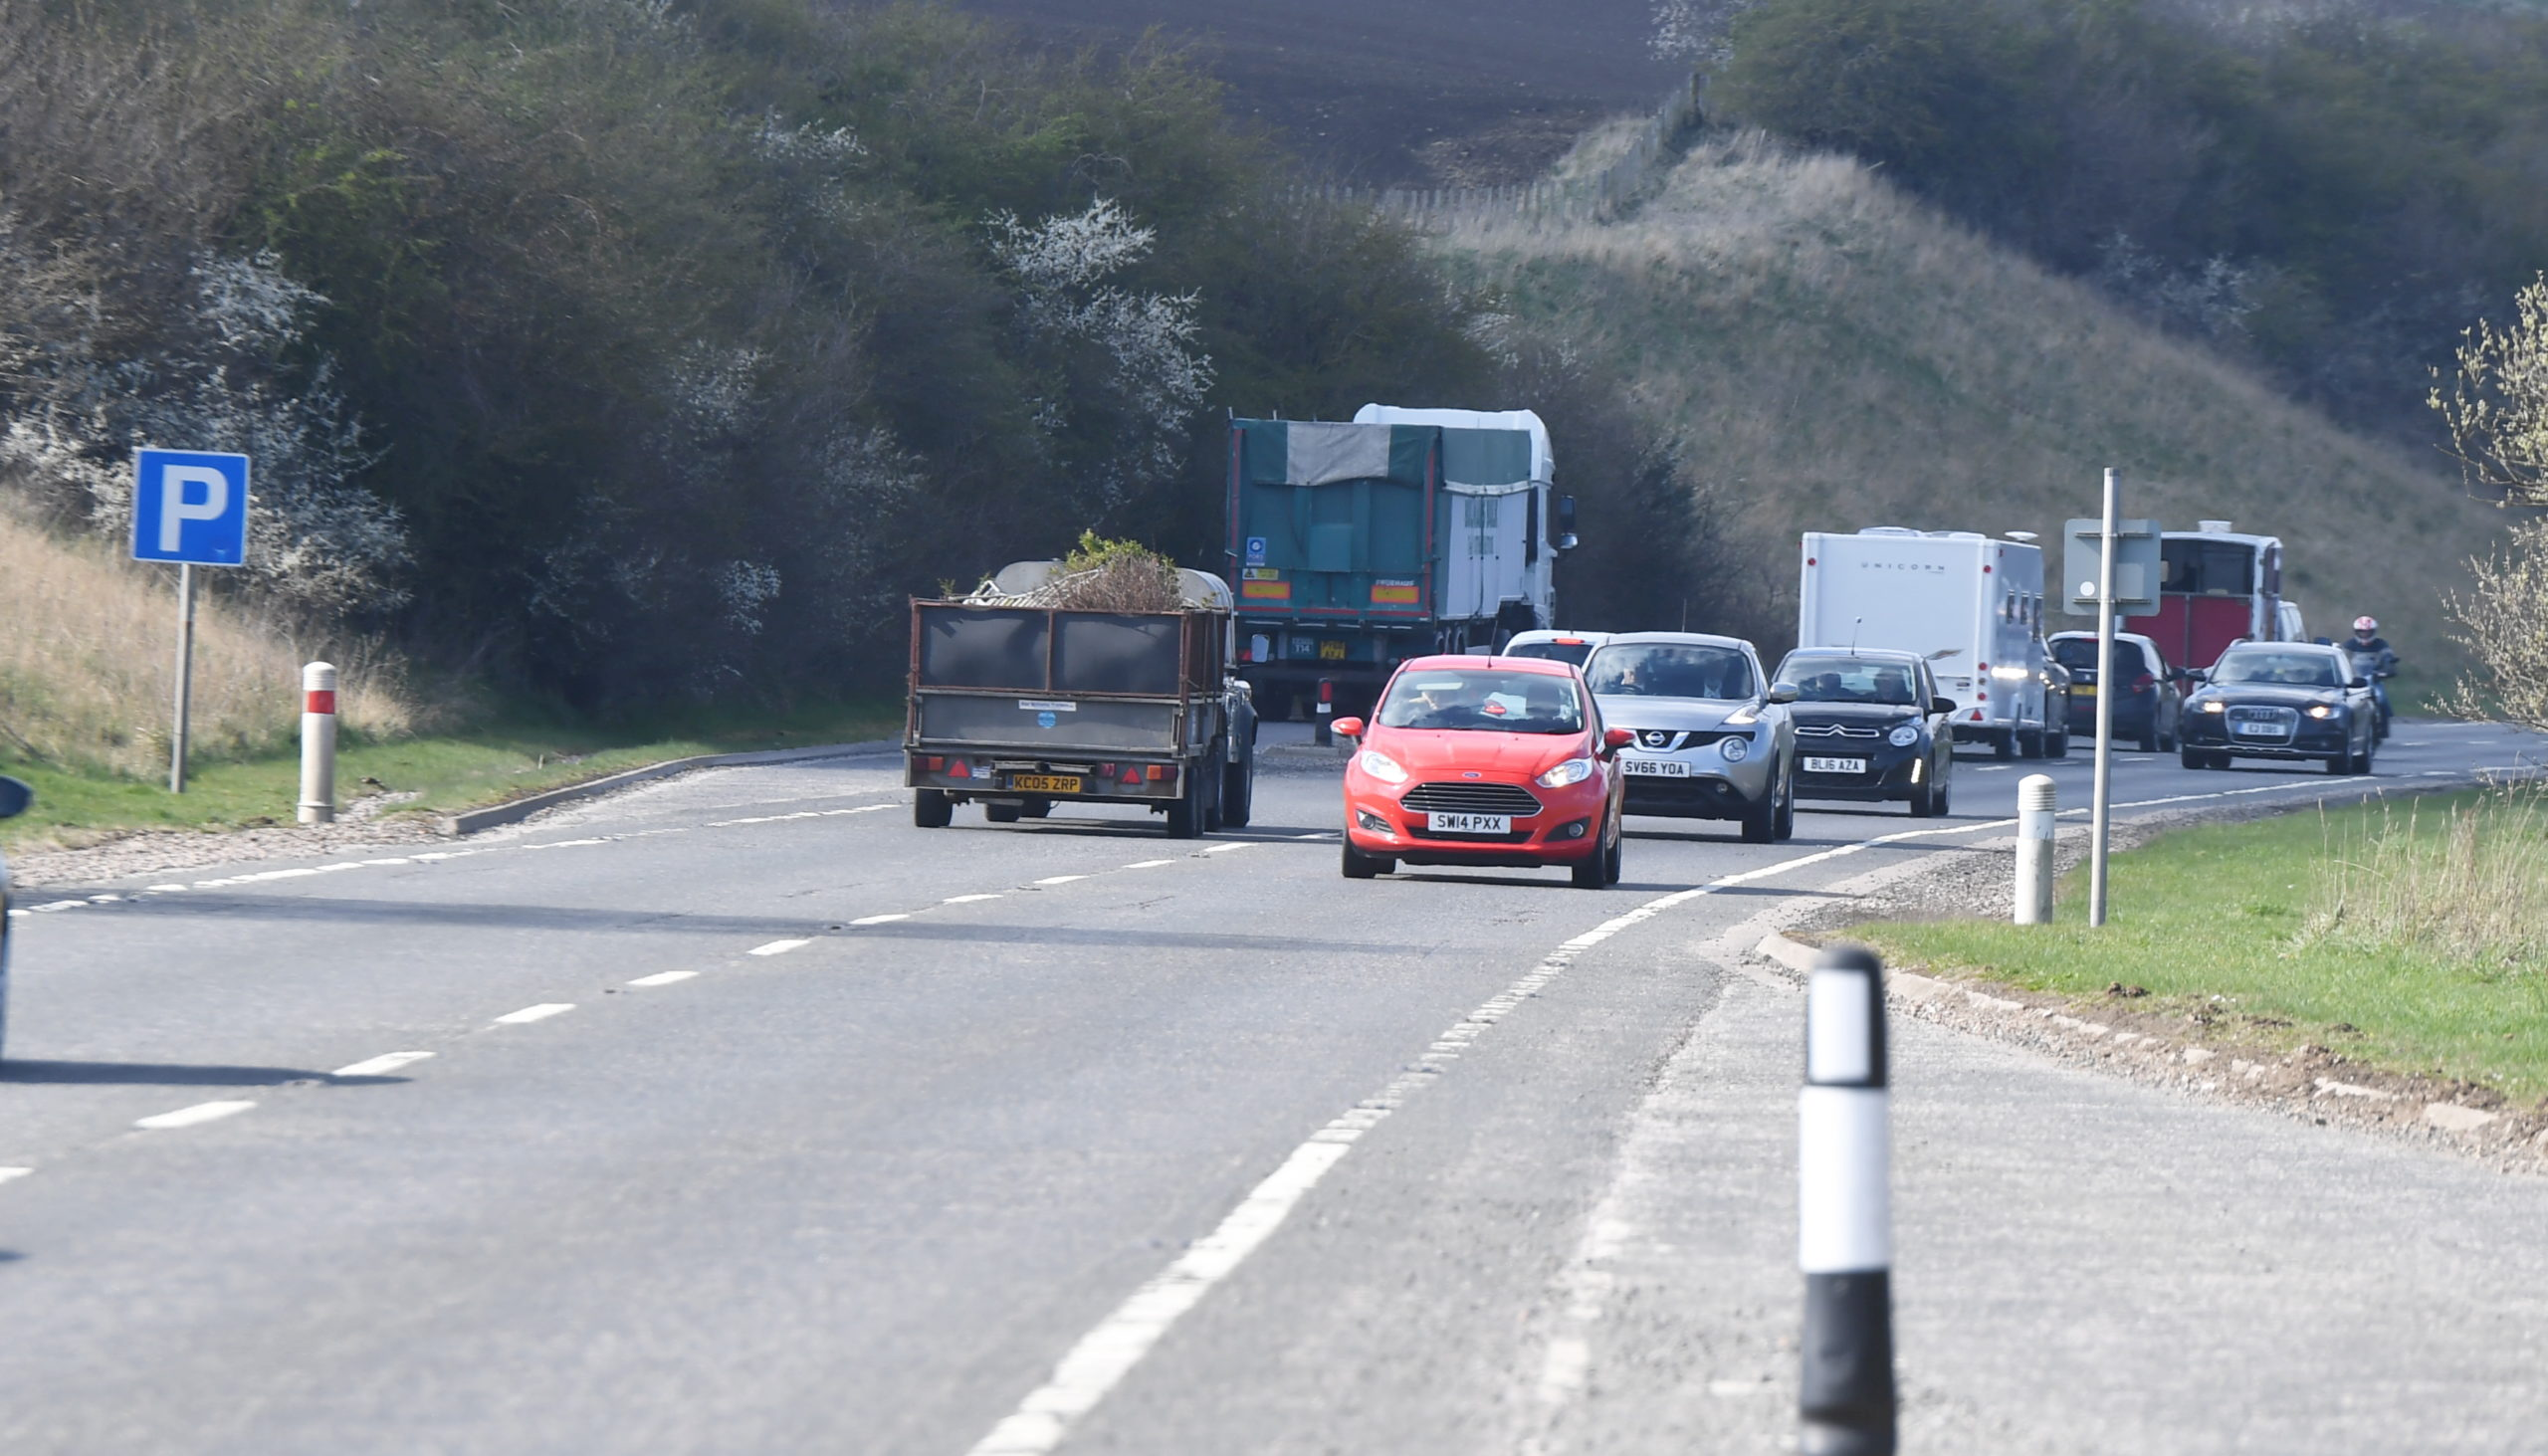 A preferred option for dualling the A96 between Aberdeen and Huntly will not be revealed until later this year